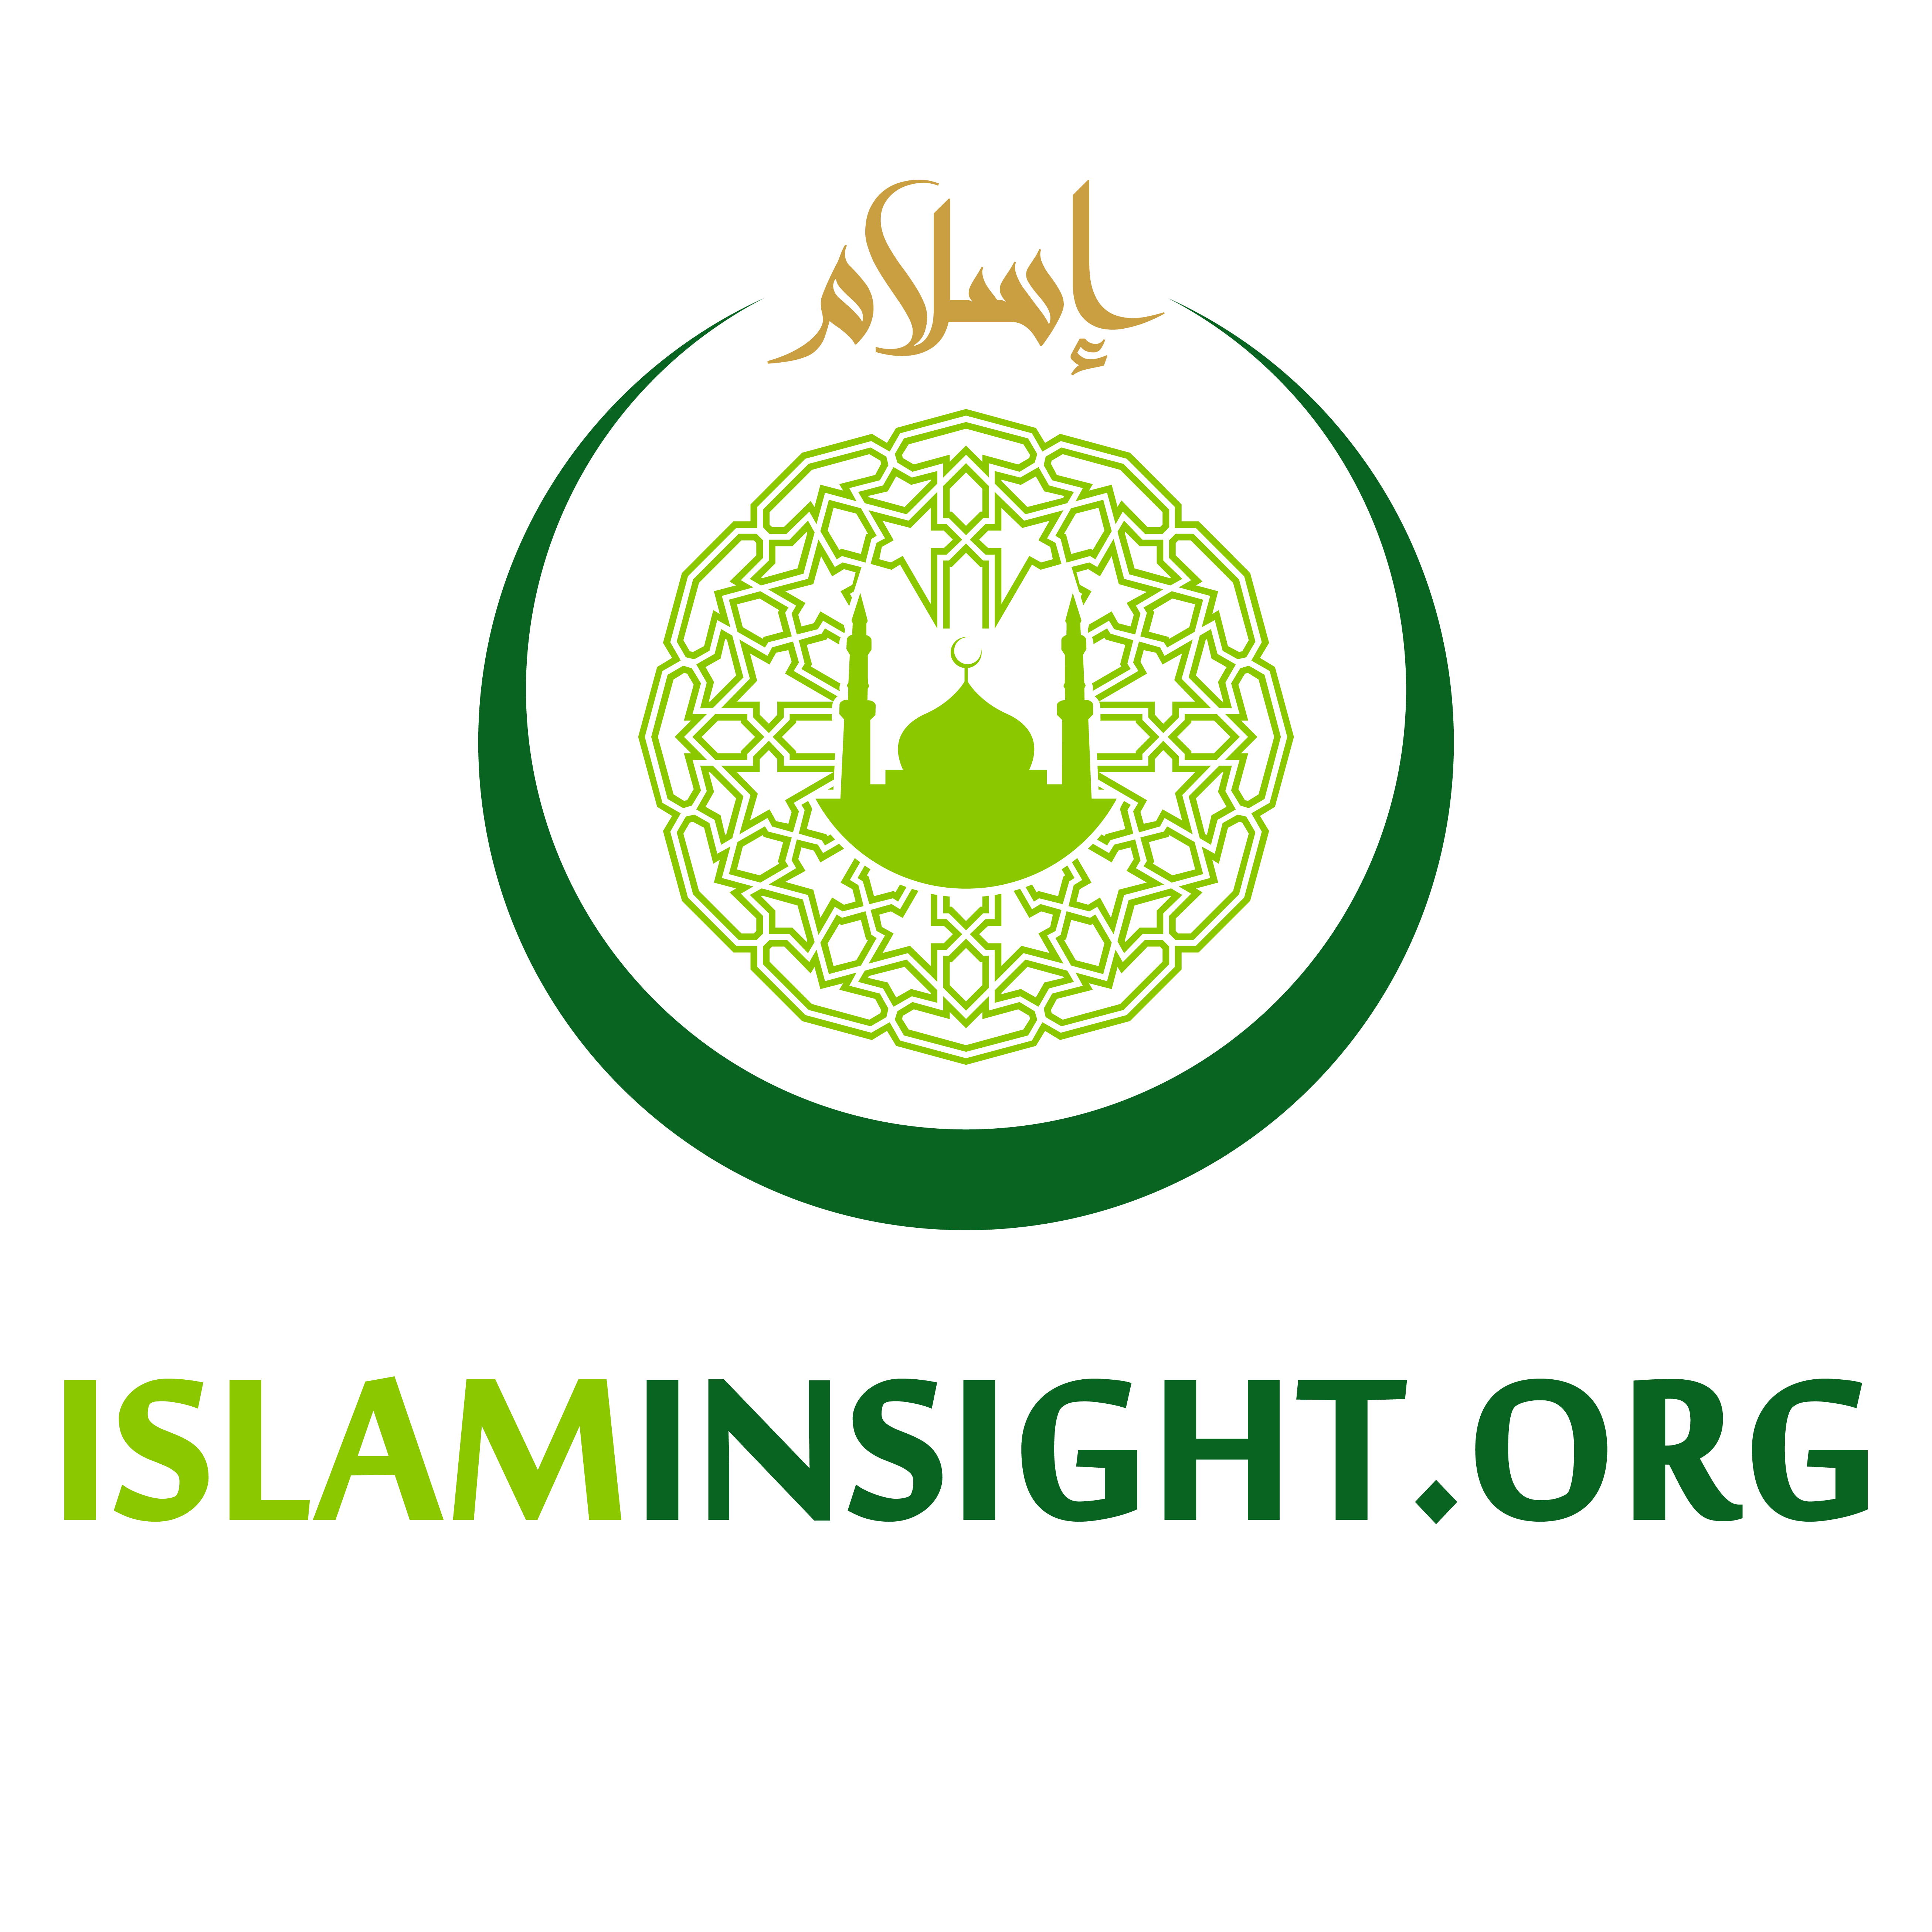 Islam Insight